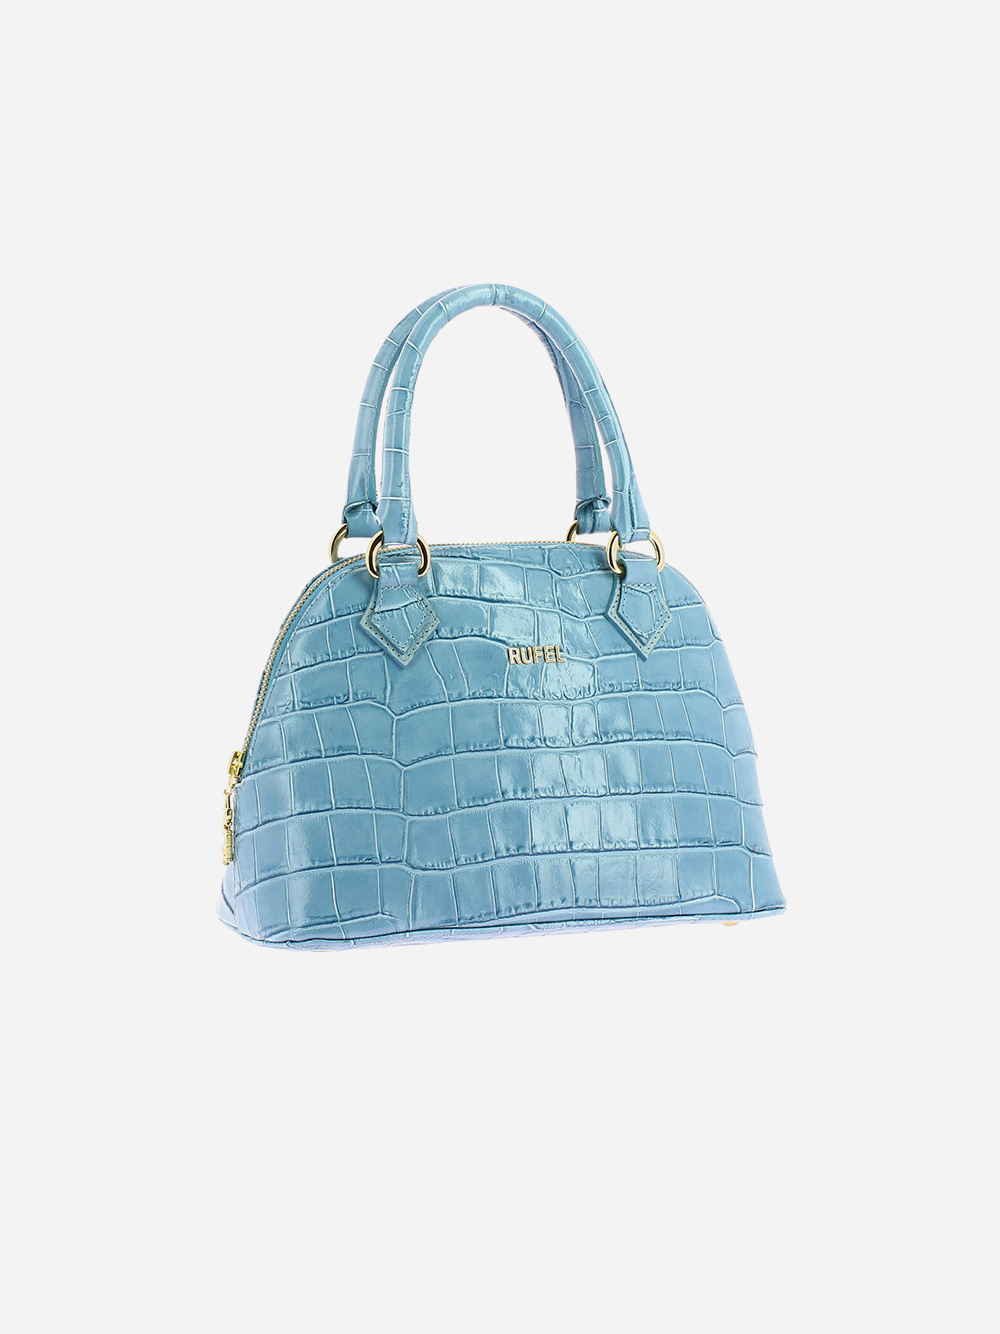 Blue Croco Handbag